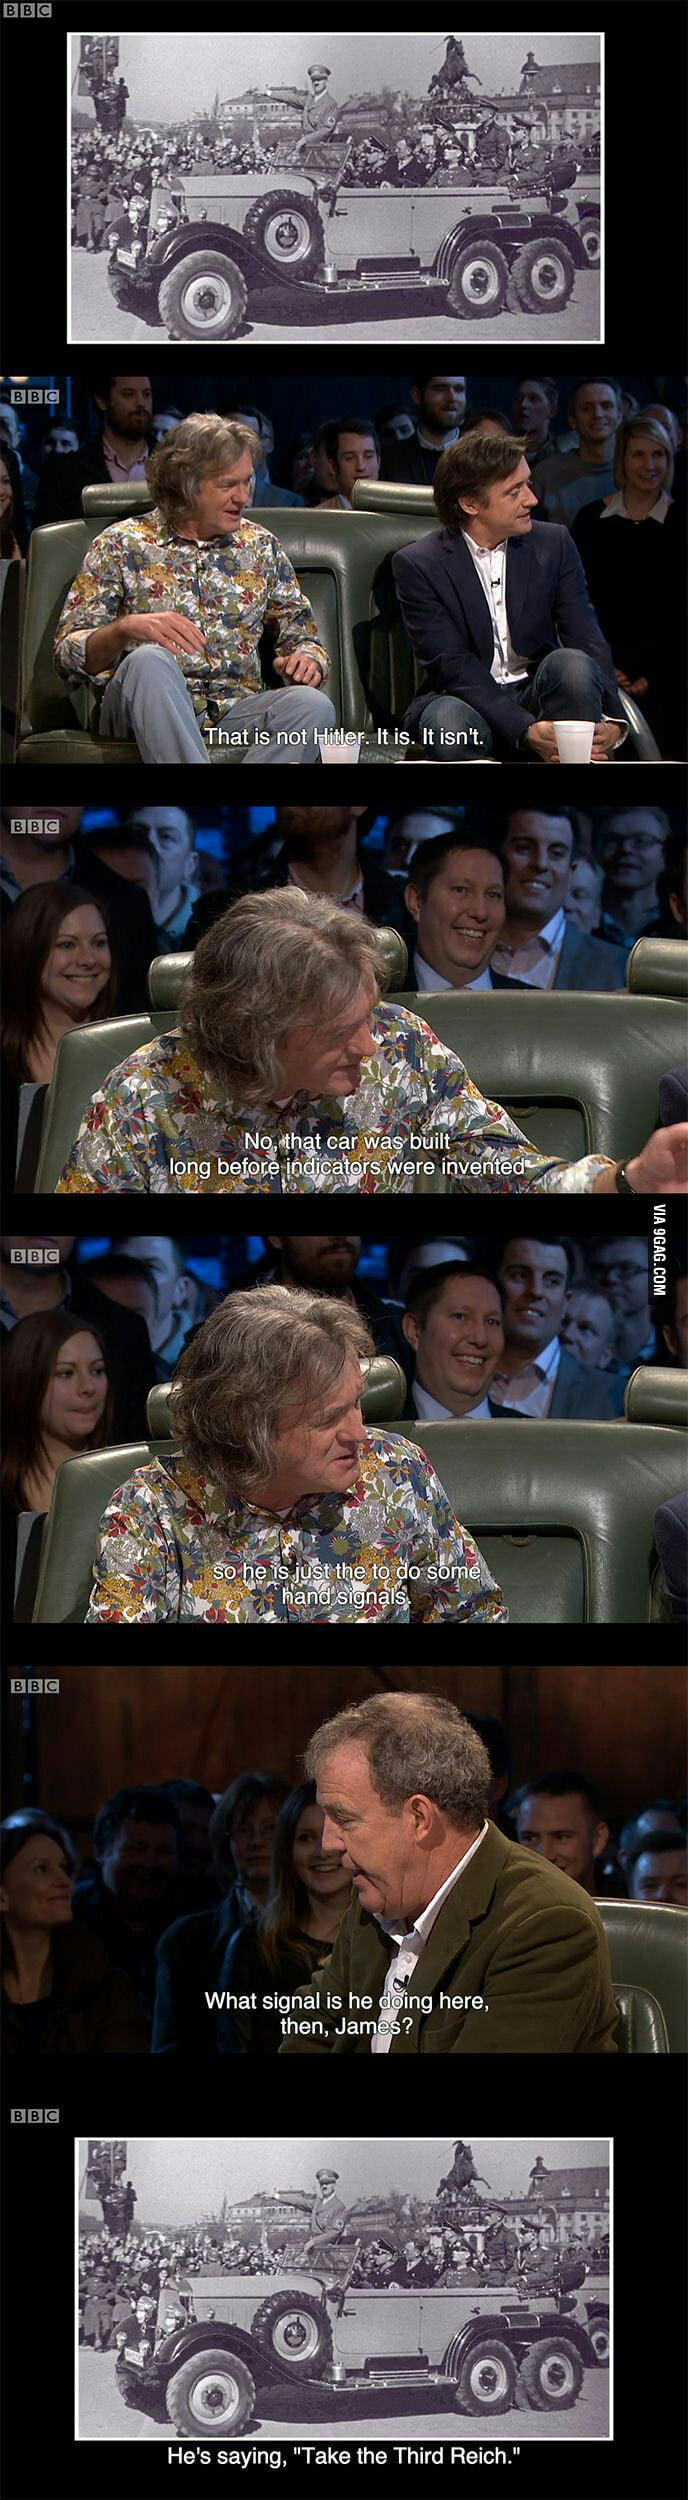 Some say, Top Gear used to be good...